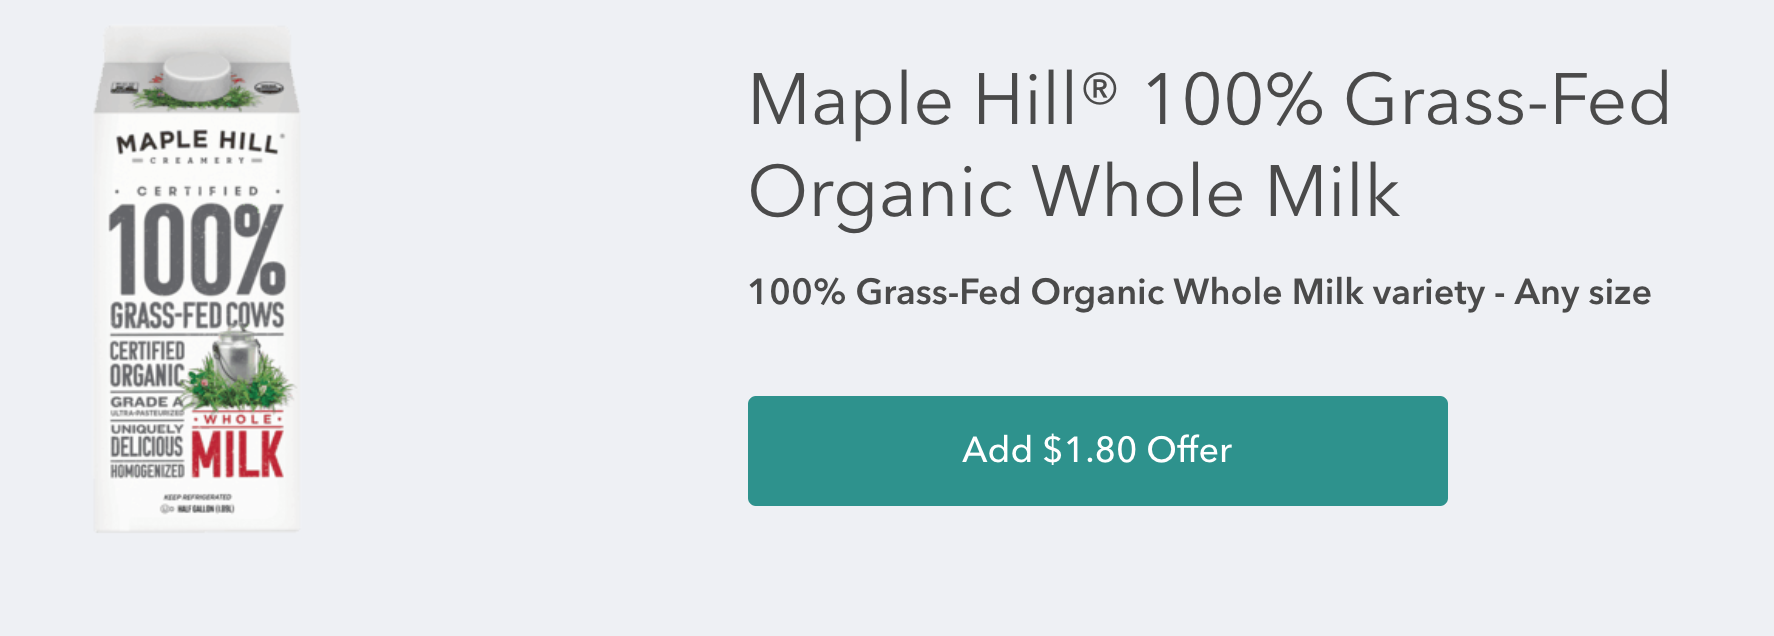 Maple Hill Organic Milk